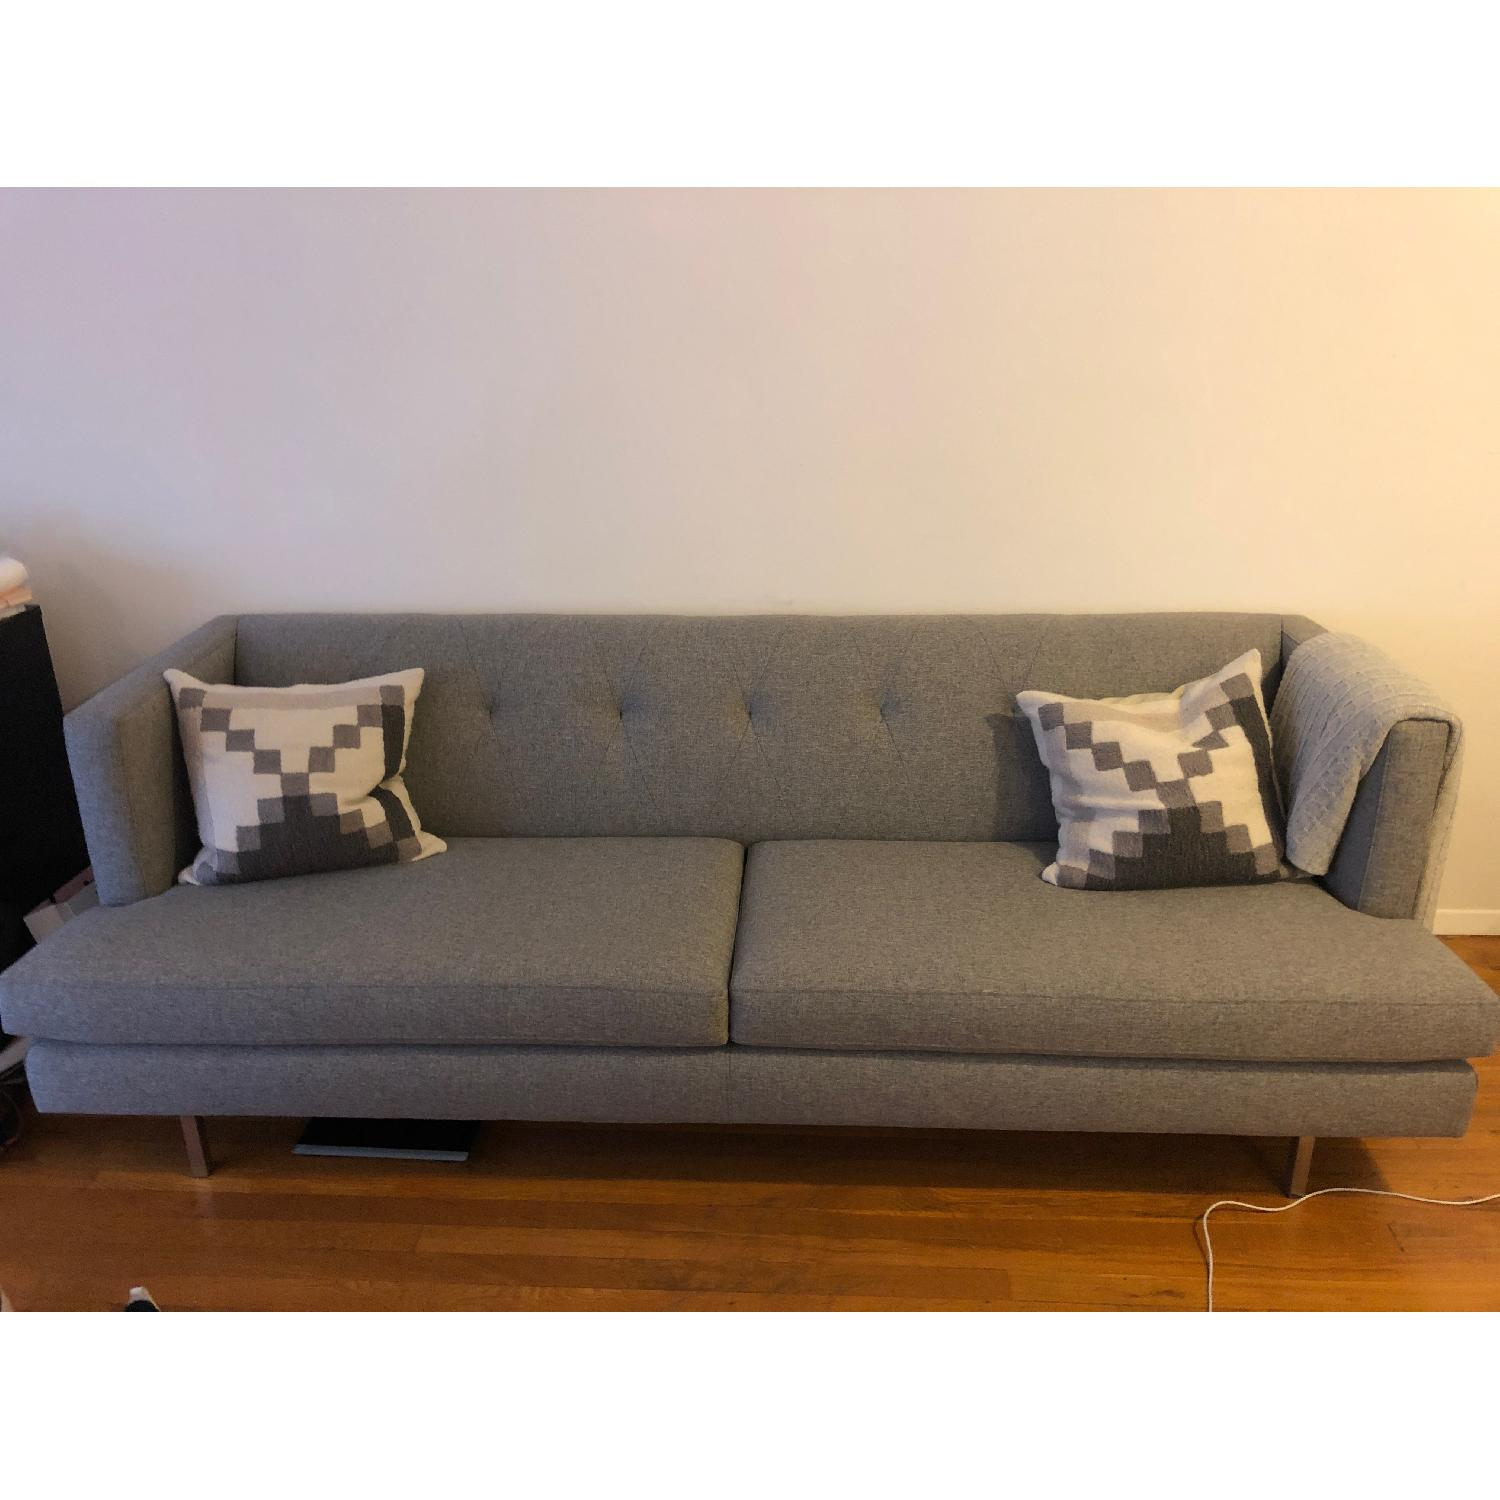 CB2 Central Grey Sofa-1